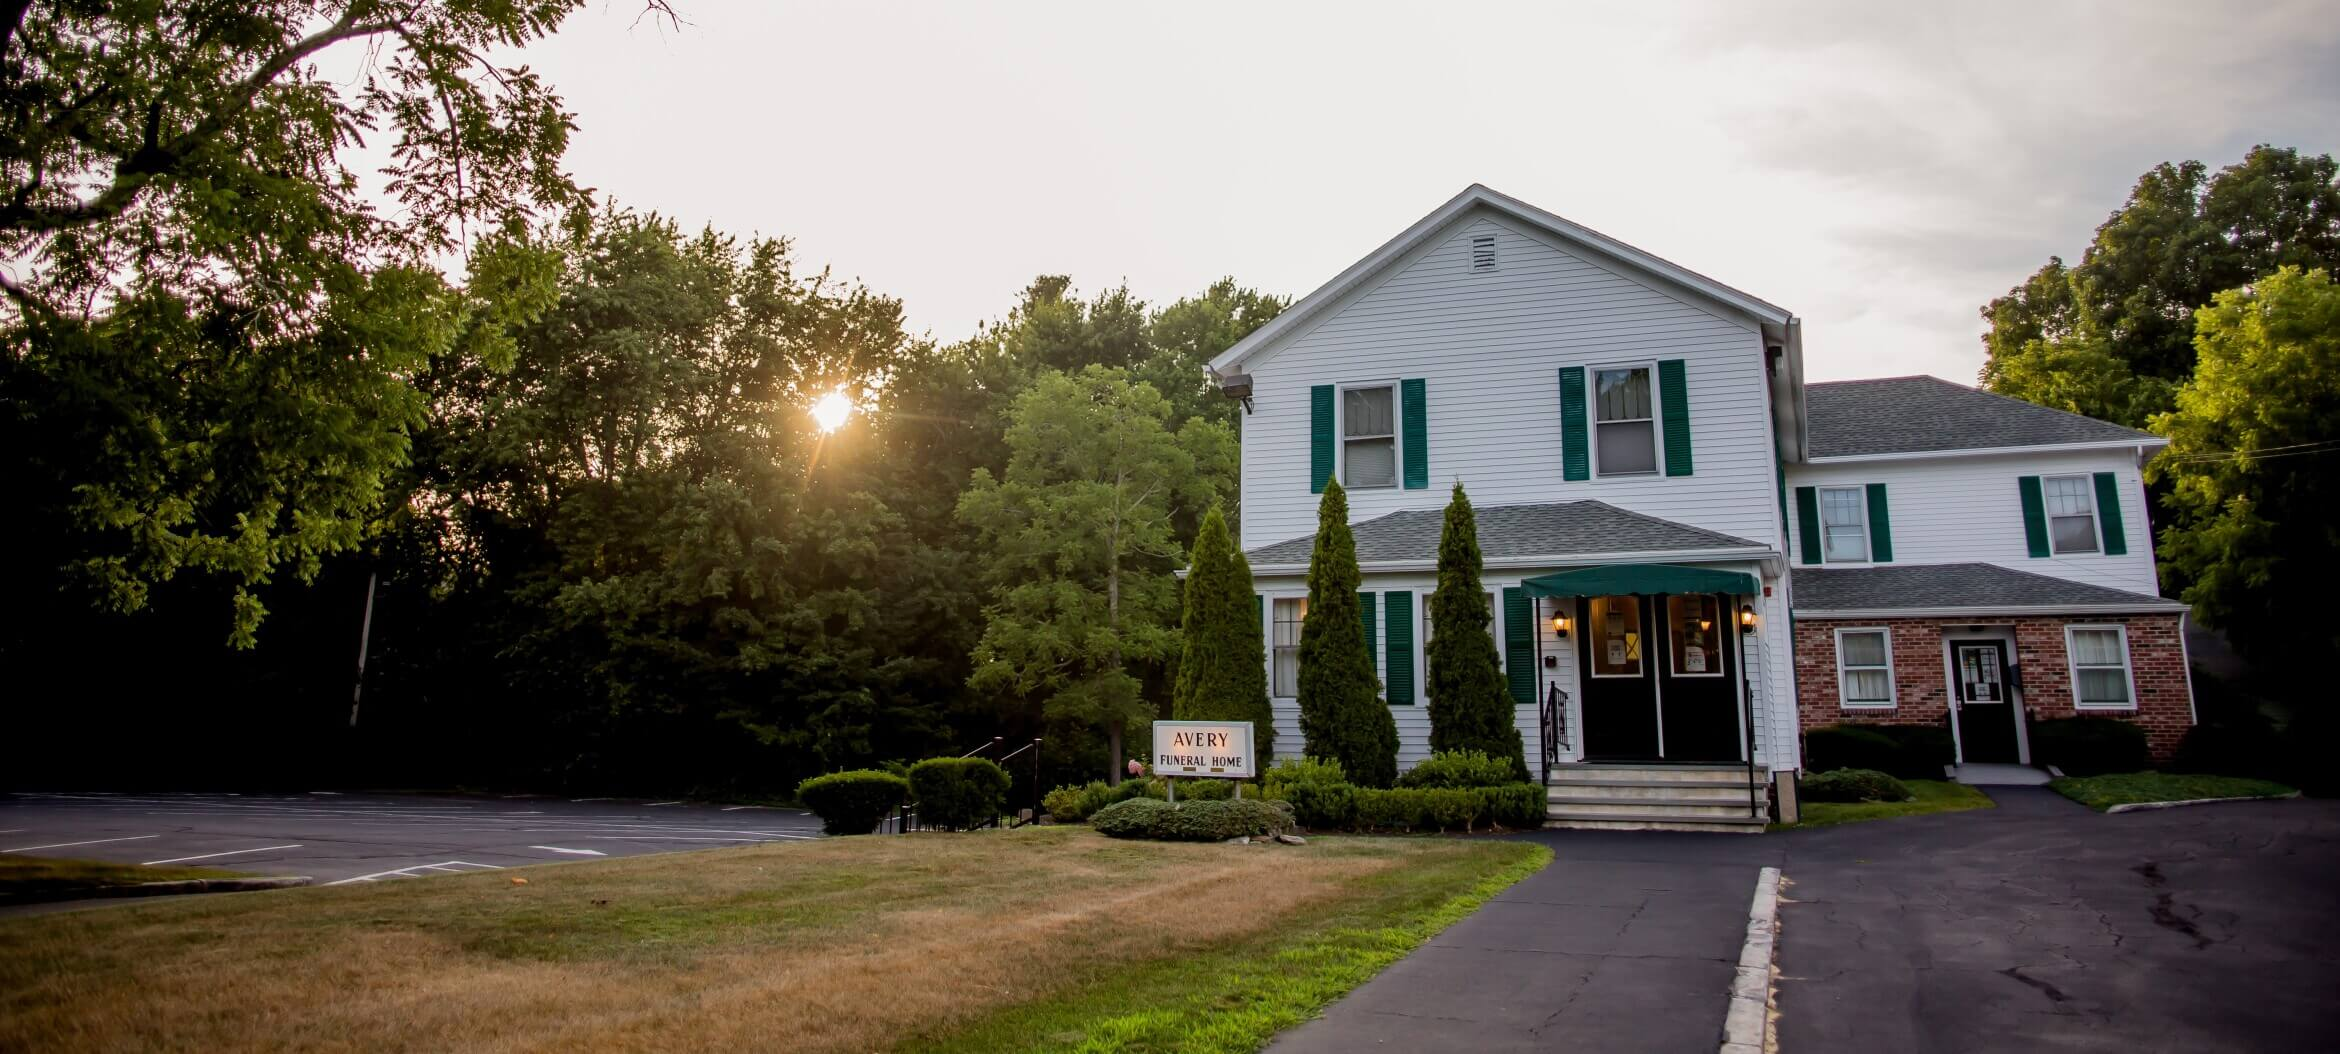 S.R. Avery Funeral Home in Hope Valley, RI